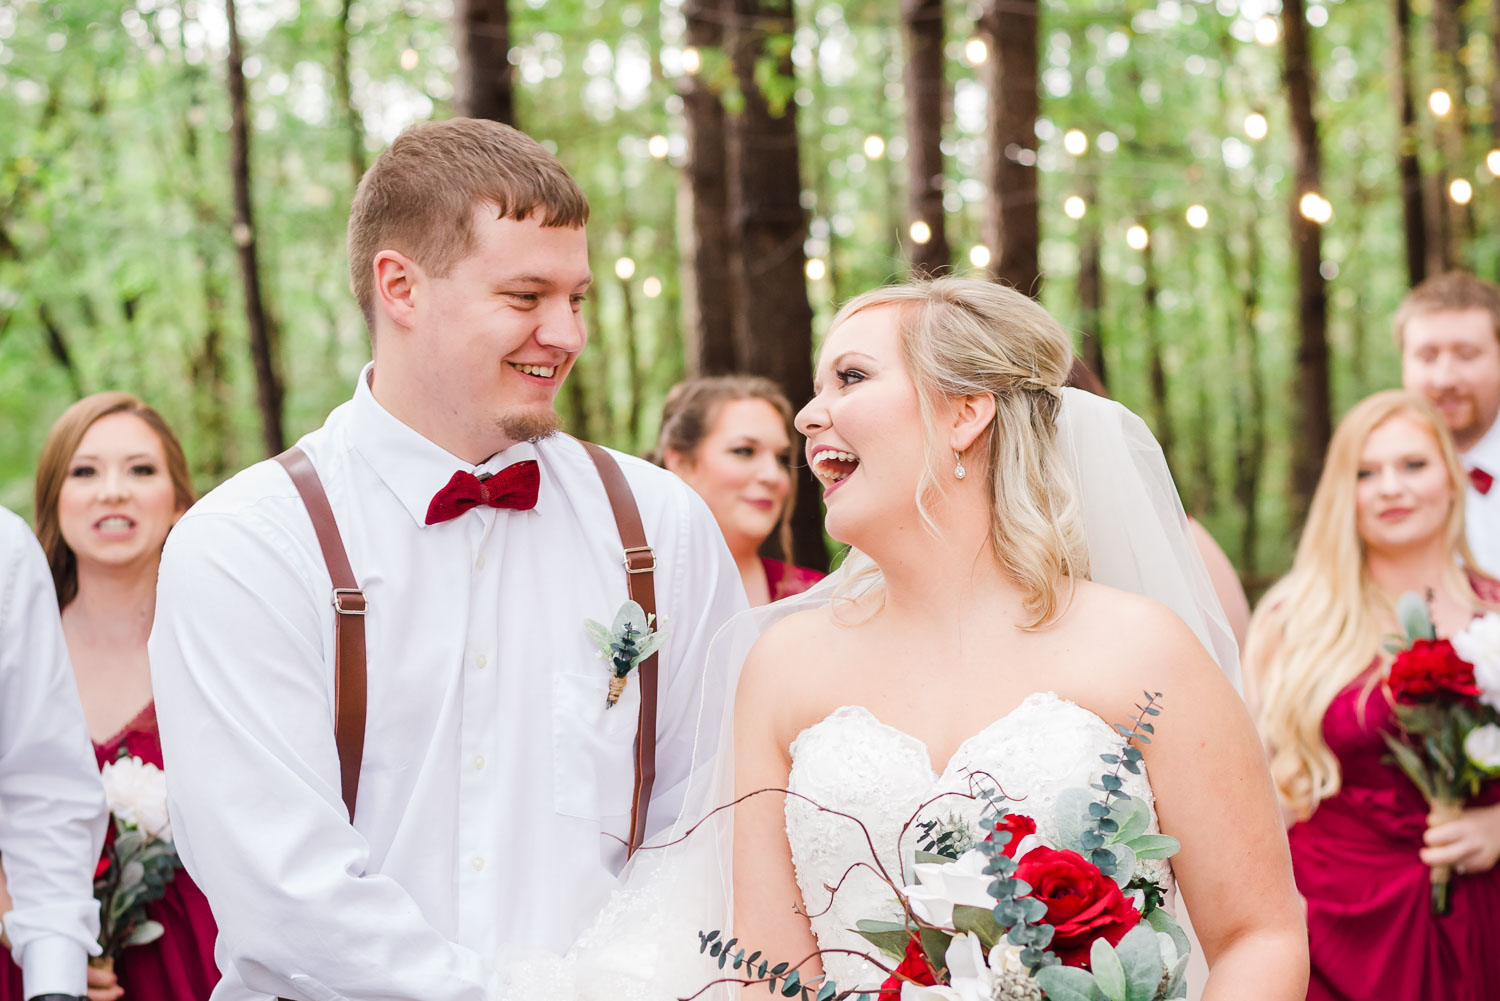 bride and groom outside under twinkly lights in the woods